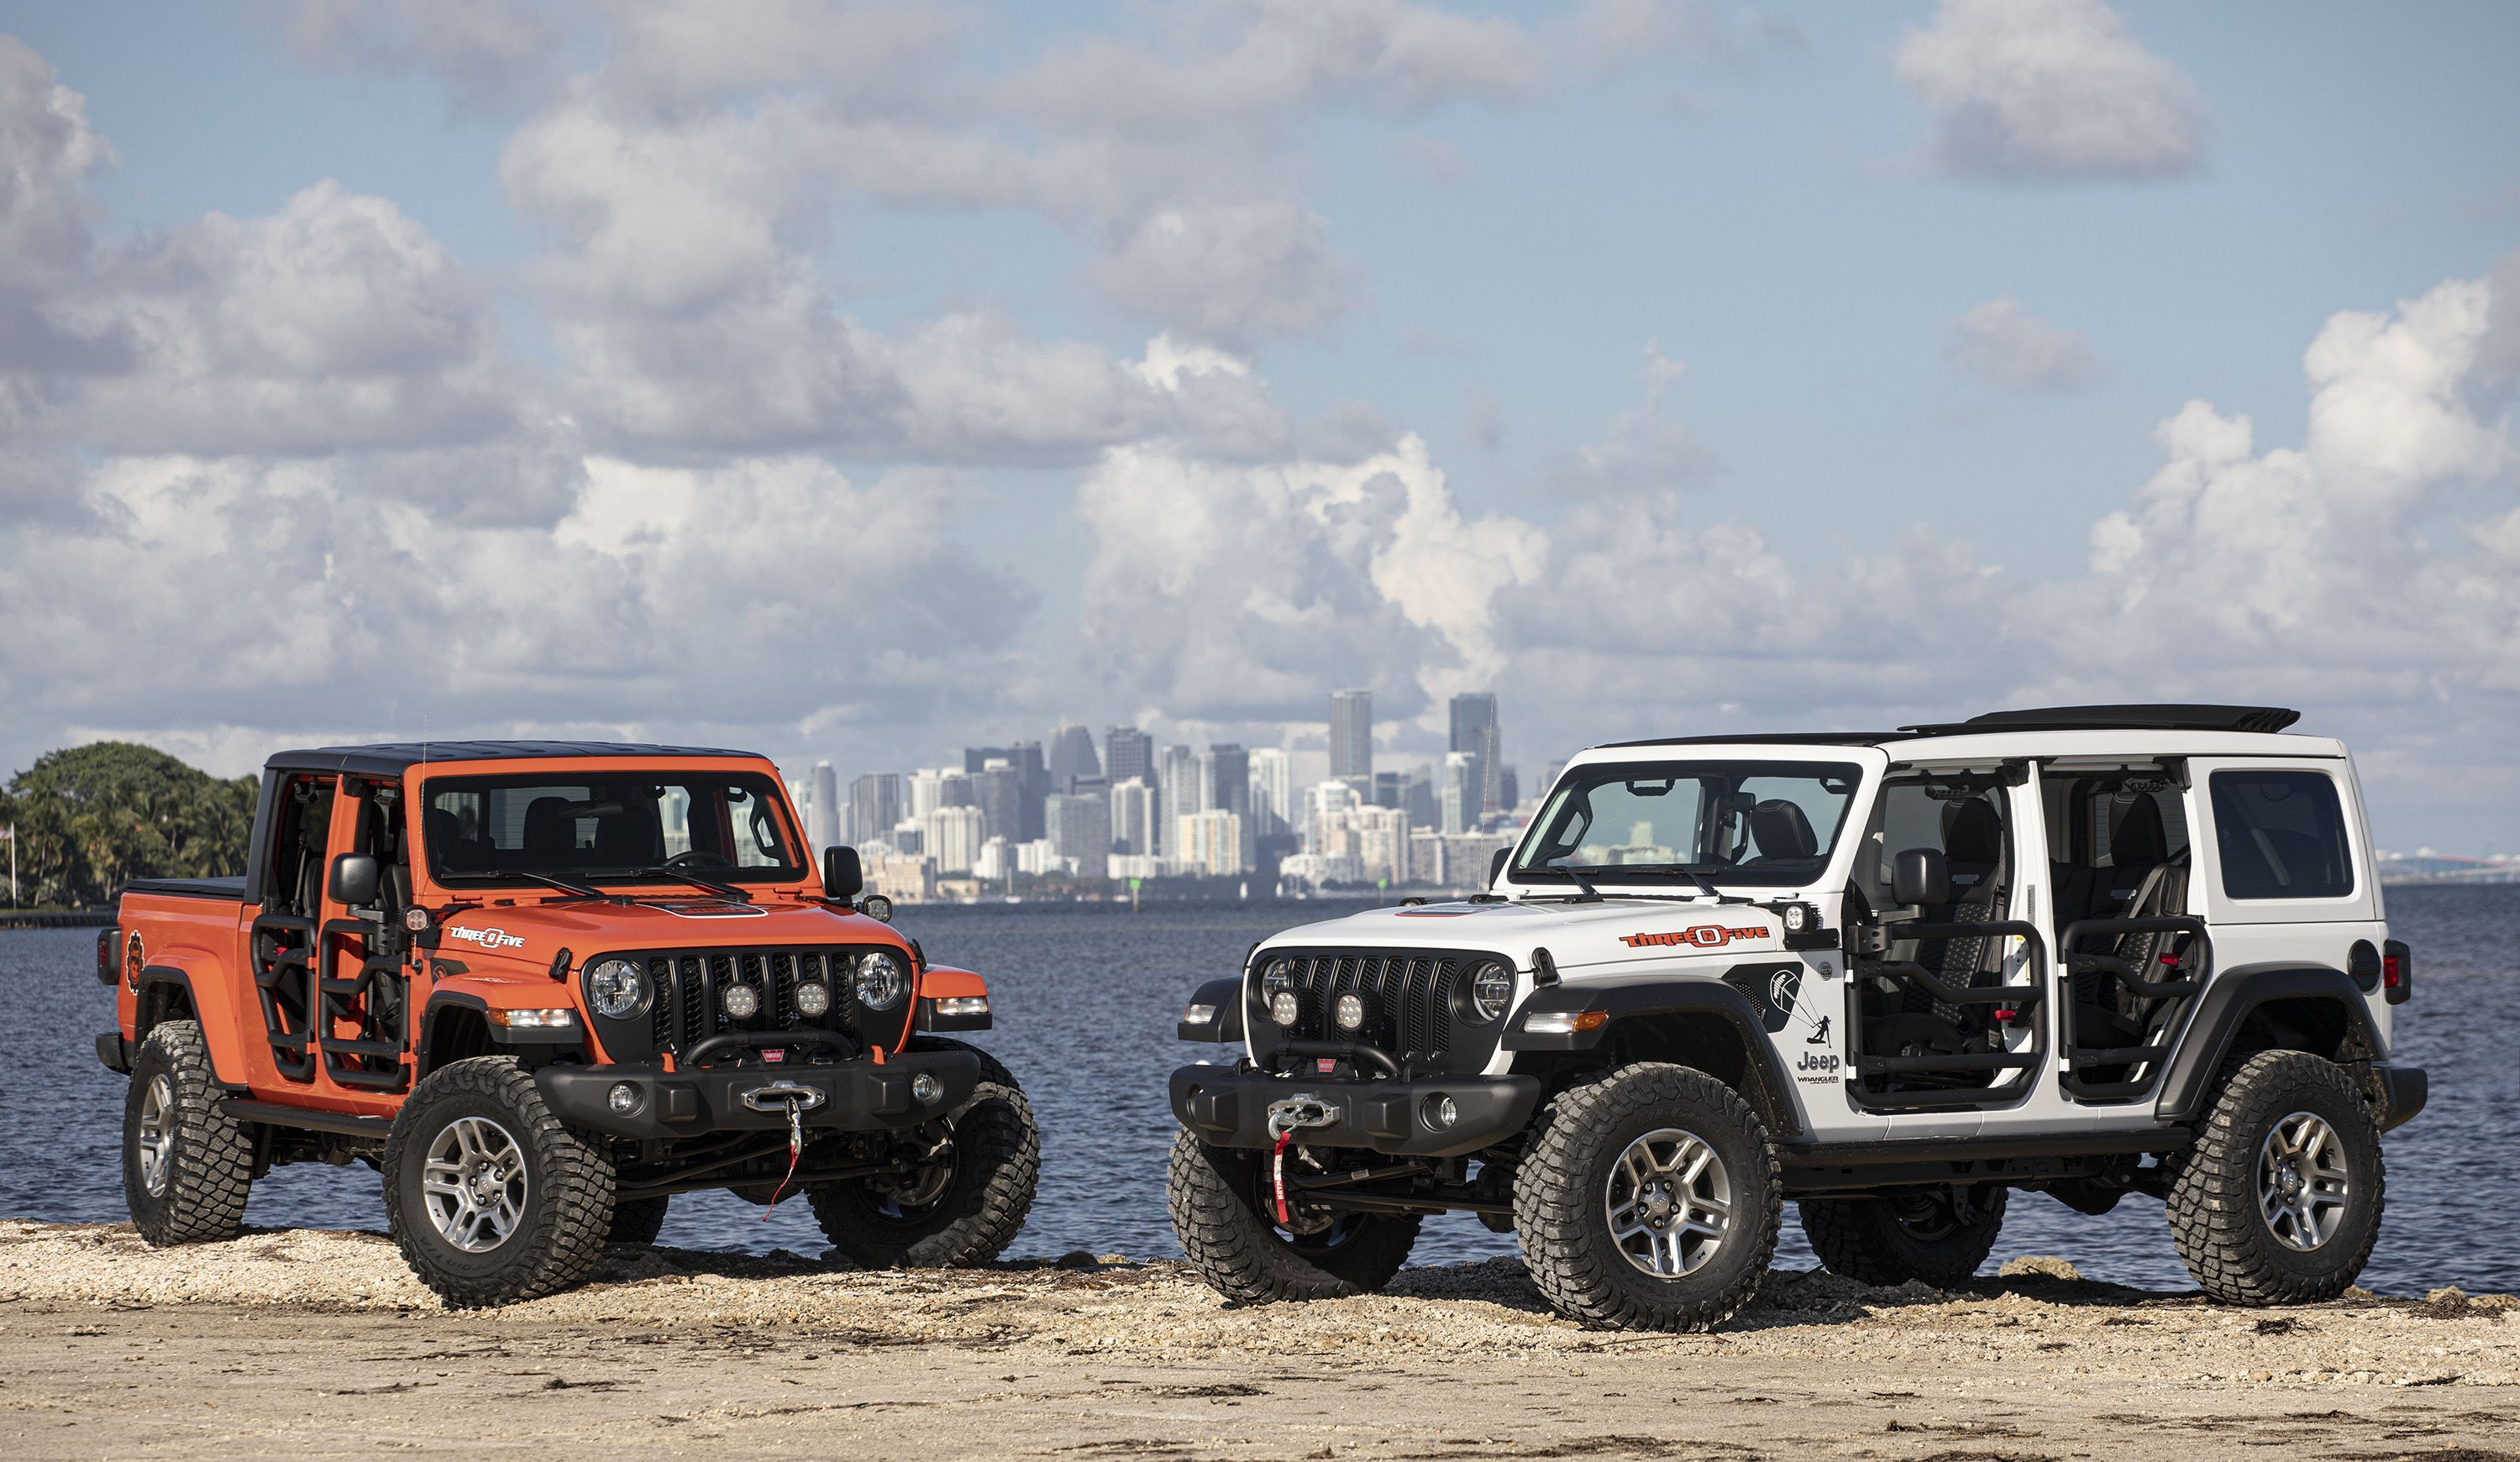 Jeep Built Miami Themed Special Editions Of The Wrangler And Gladiator Jeep Jeep Wrangler Gladiator